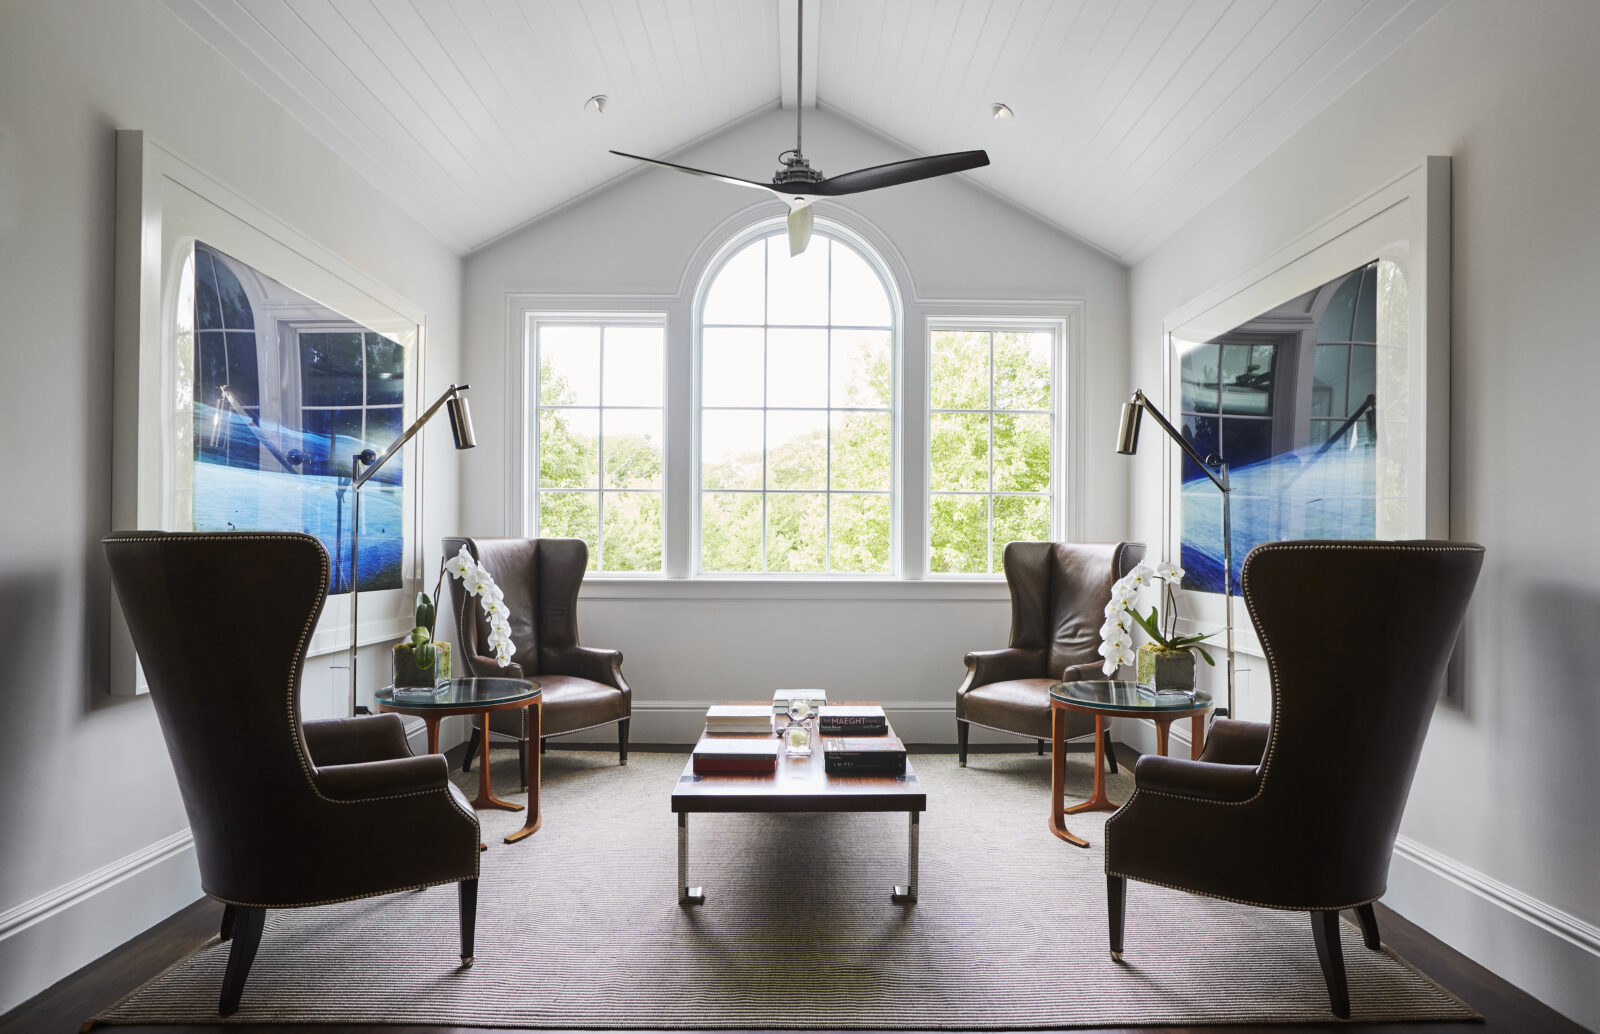 hamptons sitting room with vaulted ceilings and picture windows